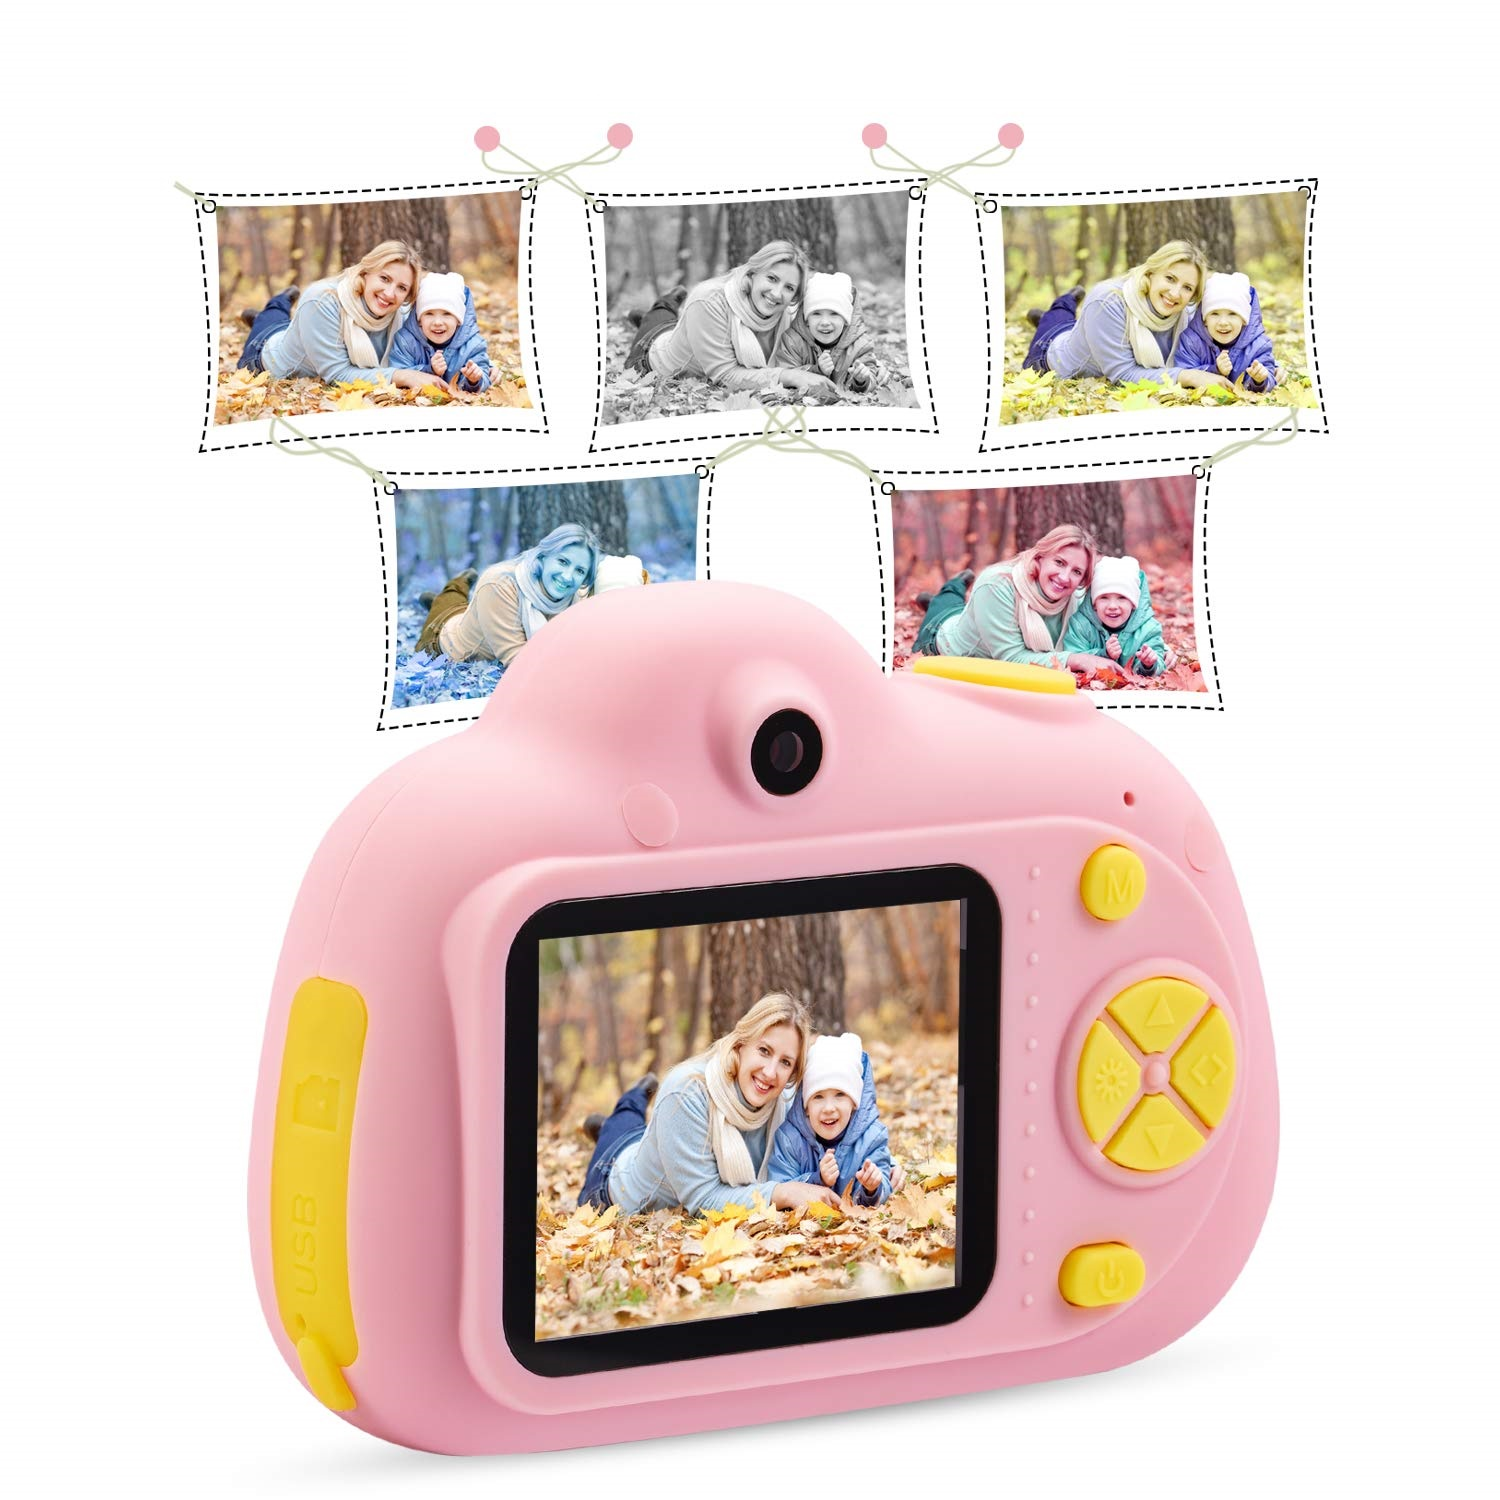 Kids Toys Camera For 3 6 Year Old Girls Boys Compact